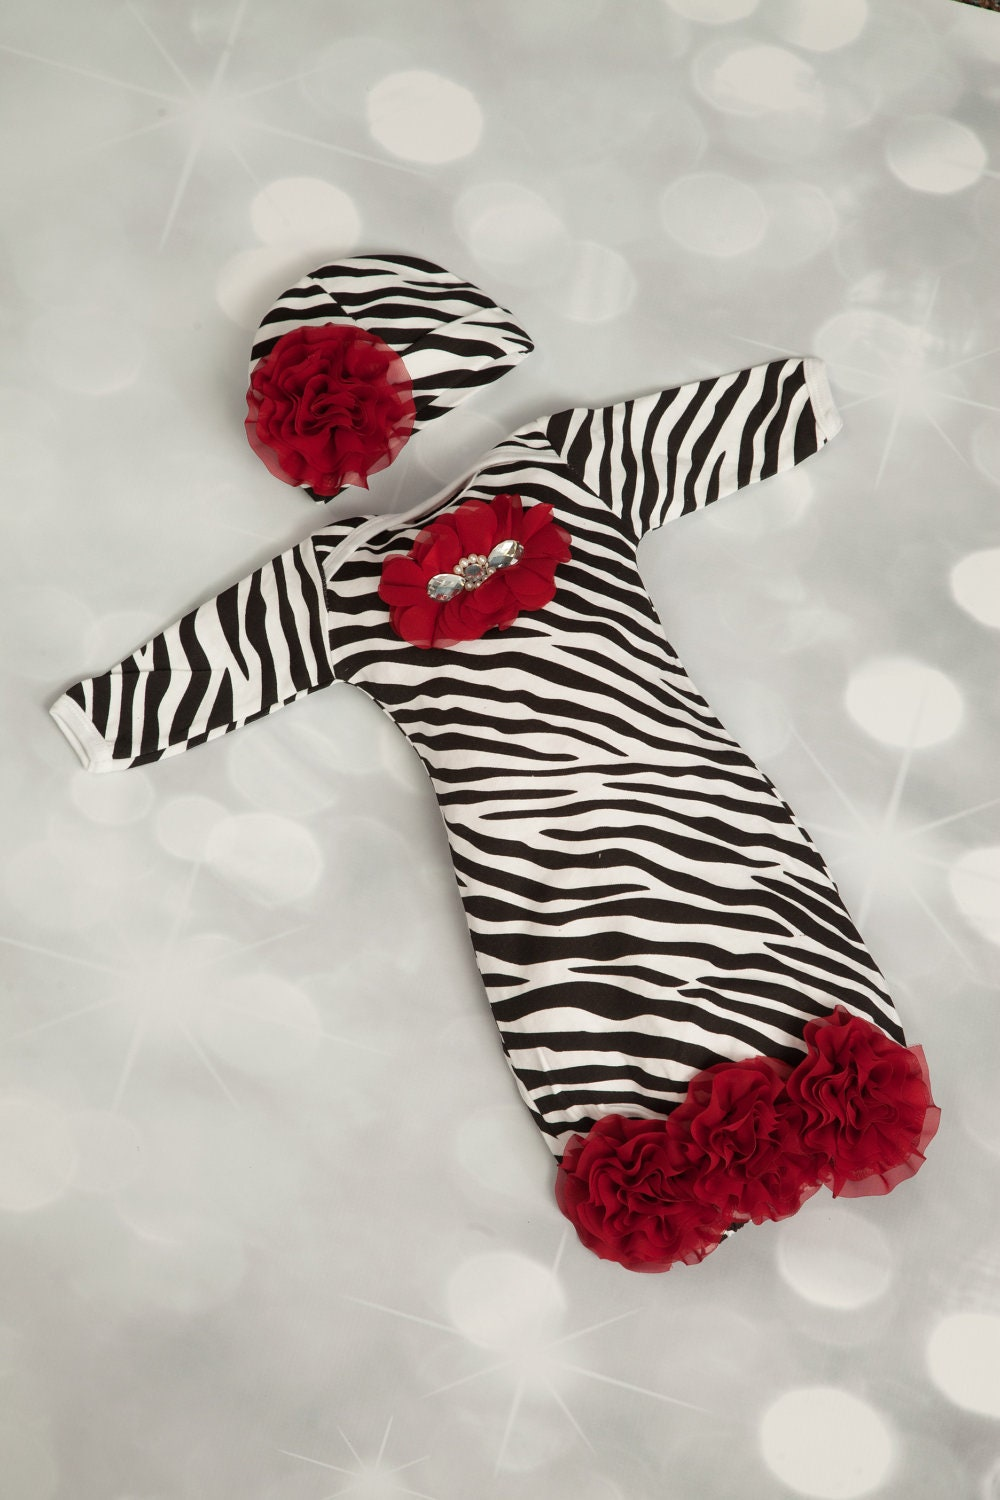 Zebra Newborn Layette Cotton Baby Gown with Burgundy Chiffon Flowers and Rhinestones